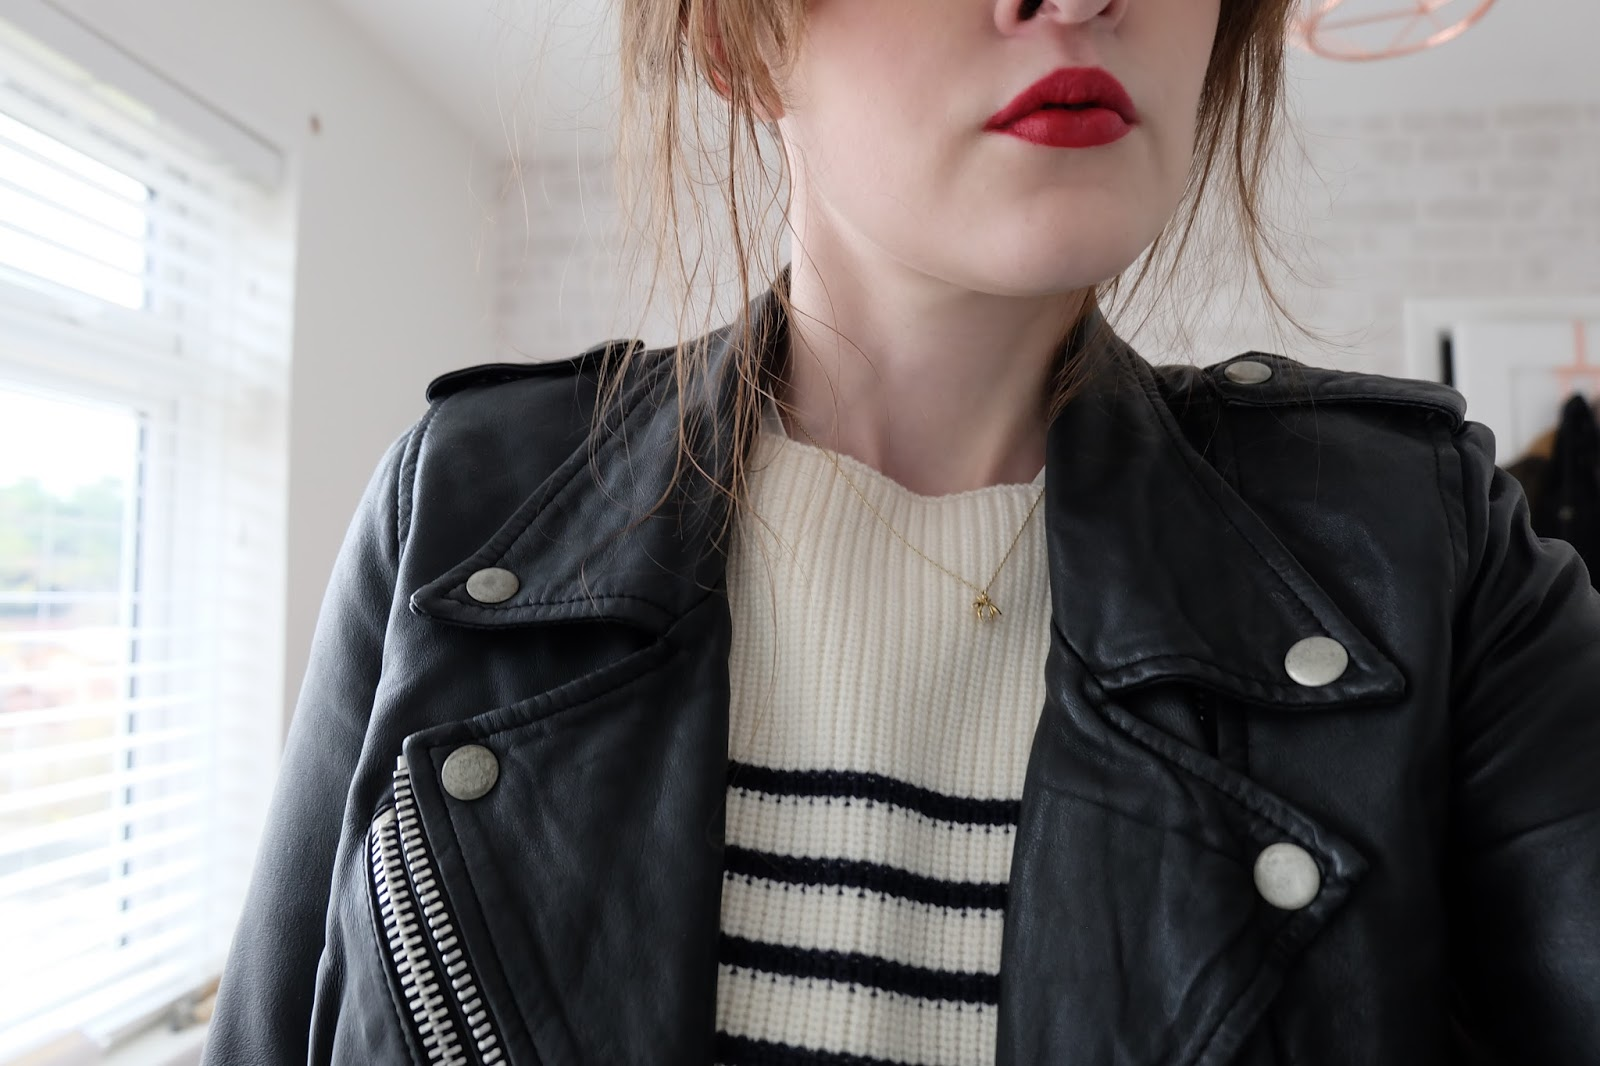 chanel la fascinante lipstick, leather jacket, stripes